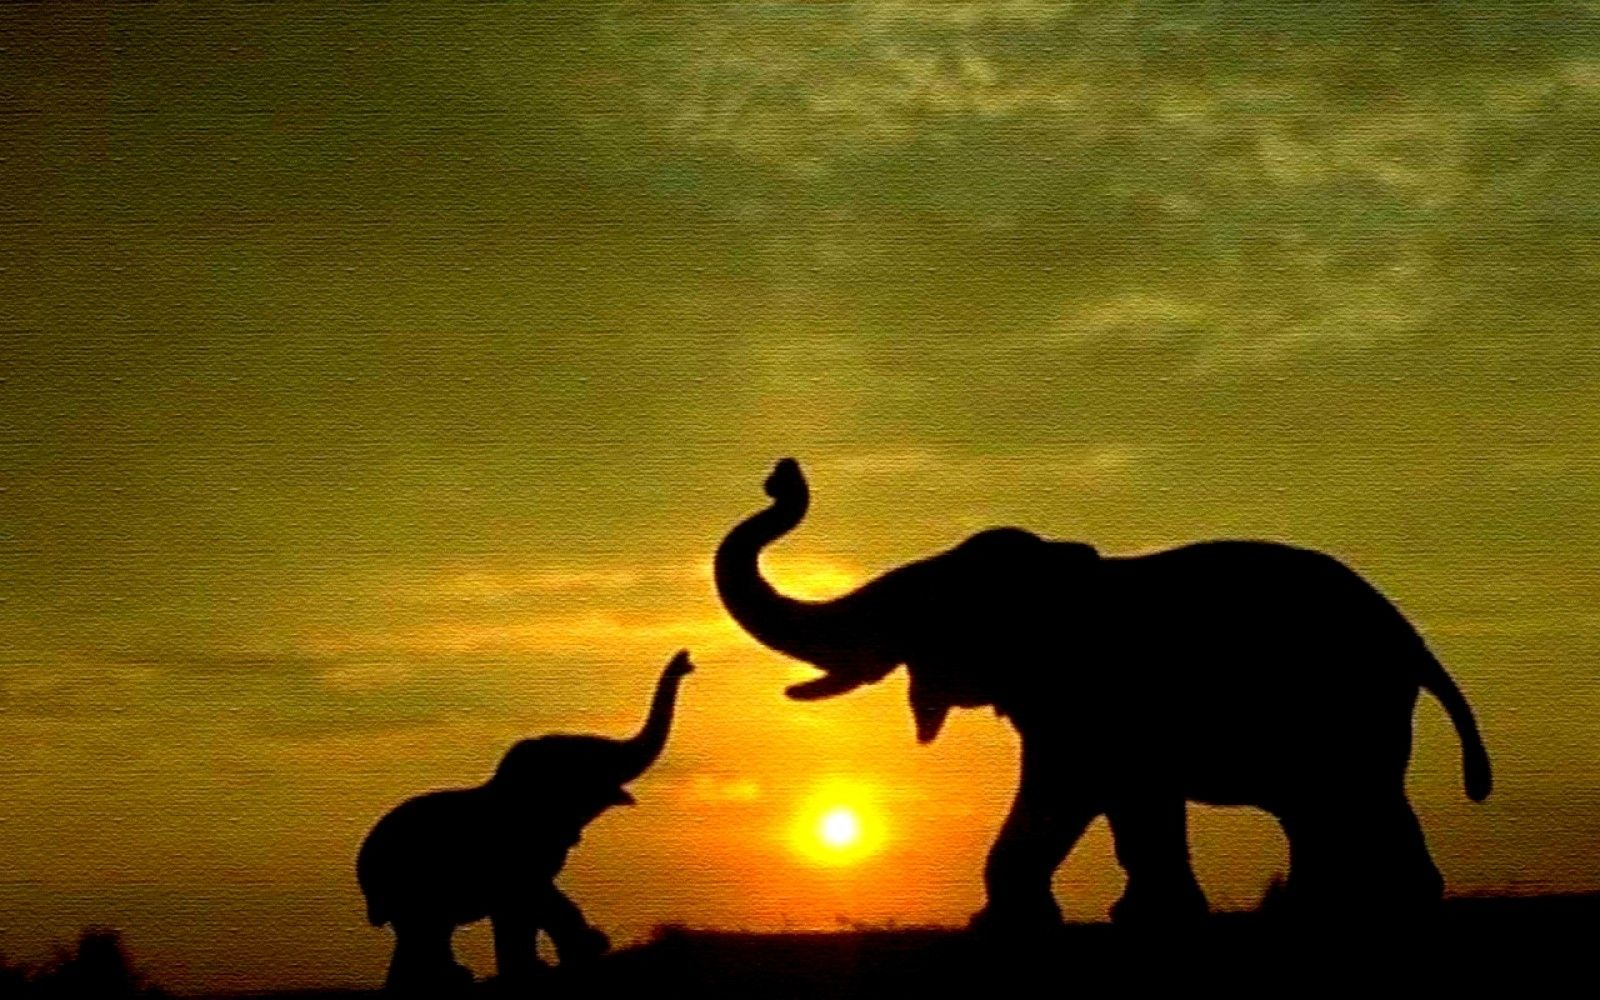 Elephant Sunset Wallpaper